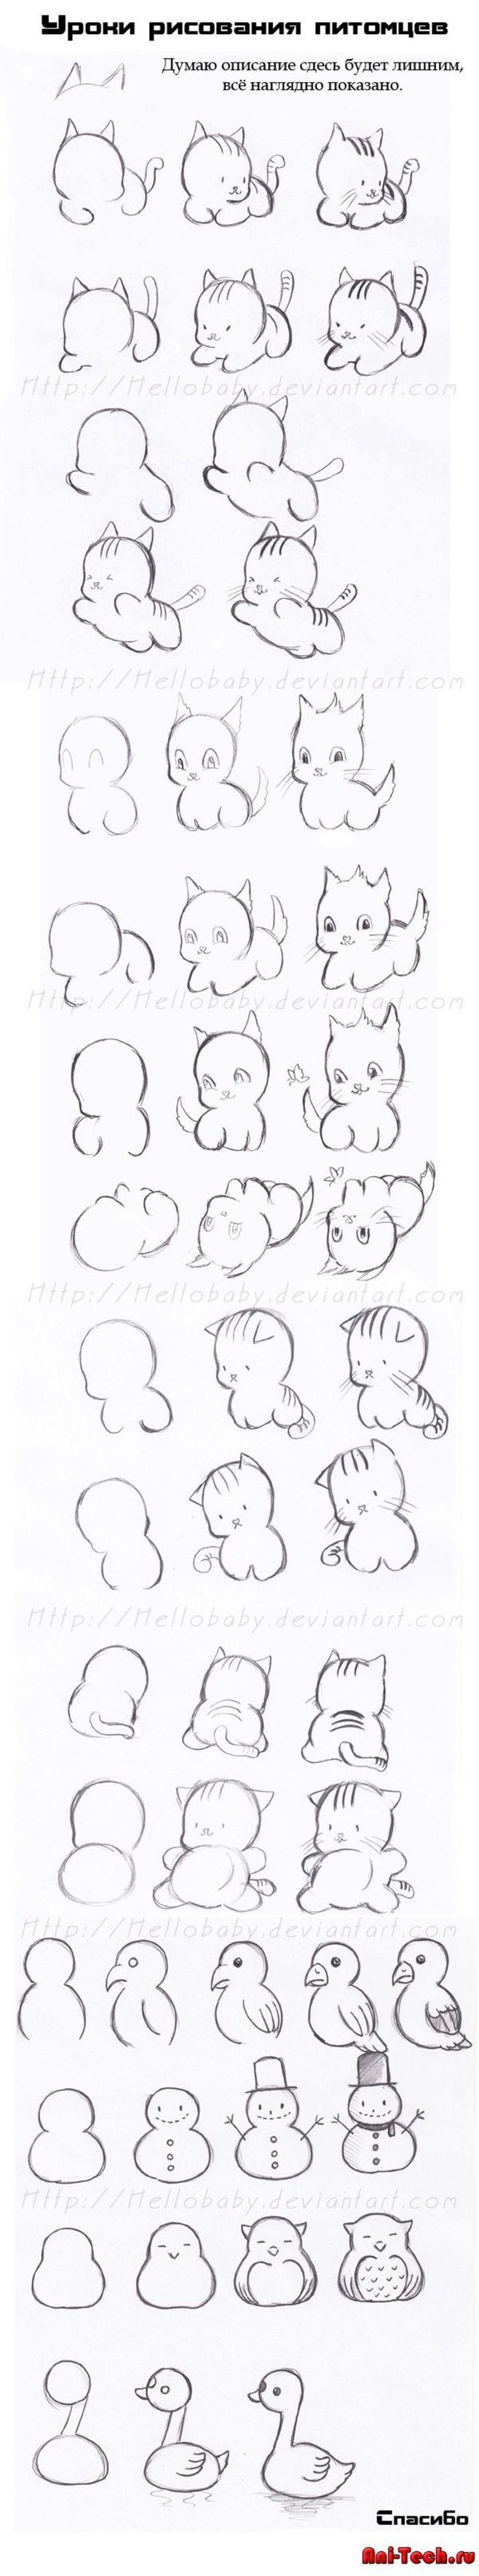 best cute images on Pinterest Drawing ideas Cute photos and